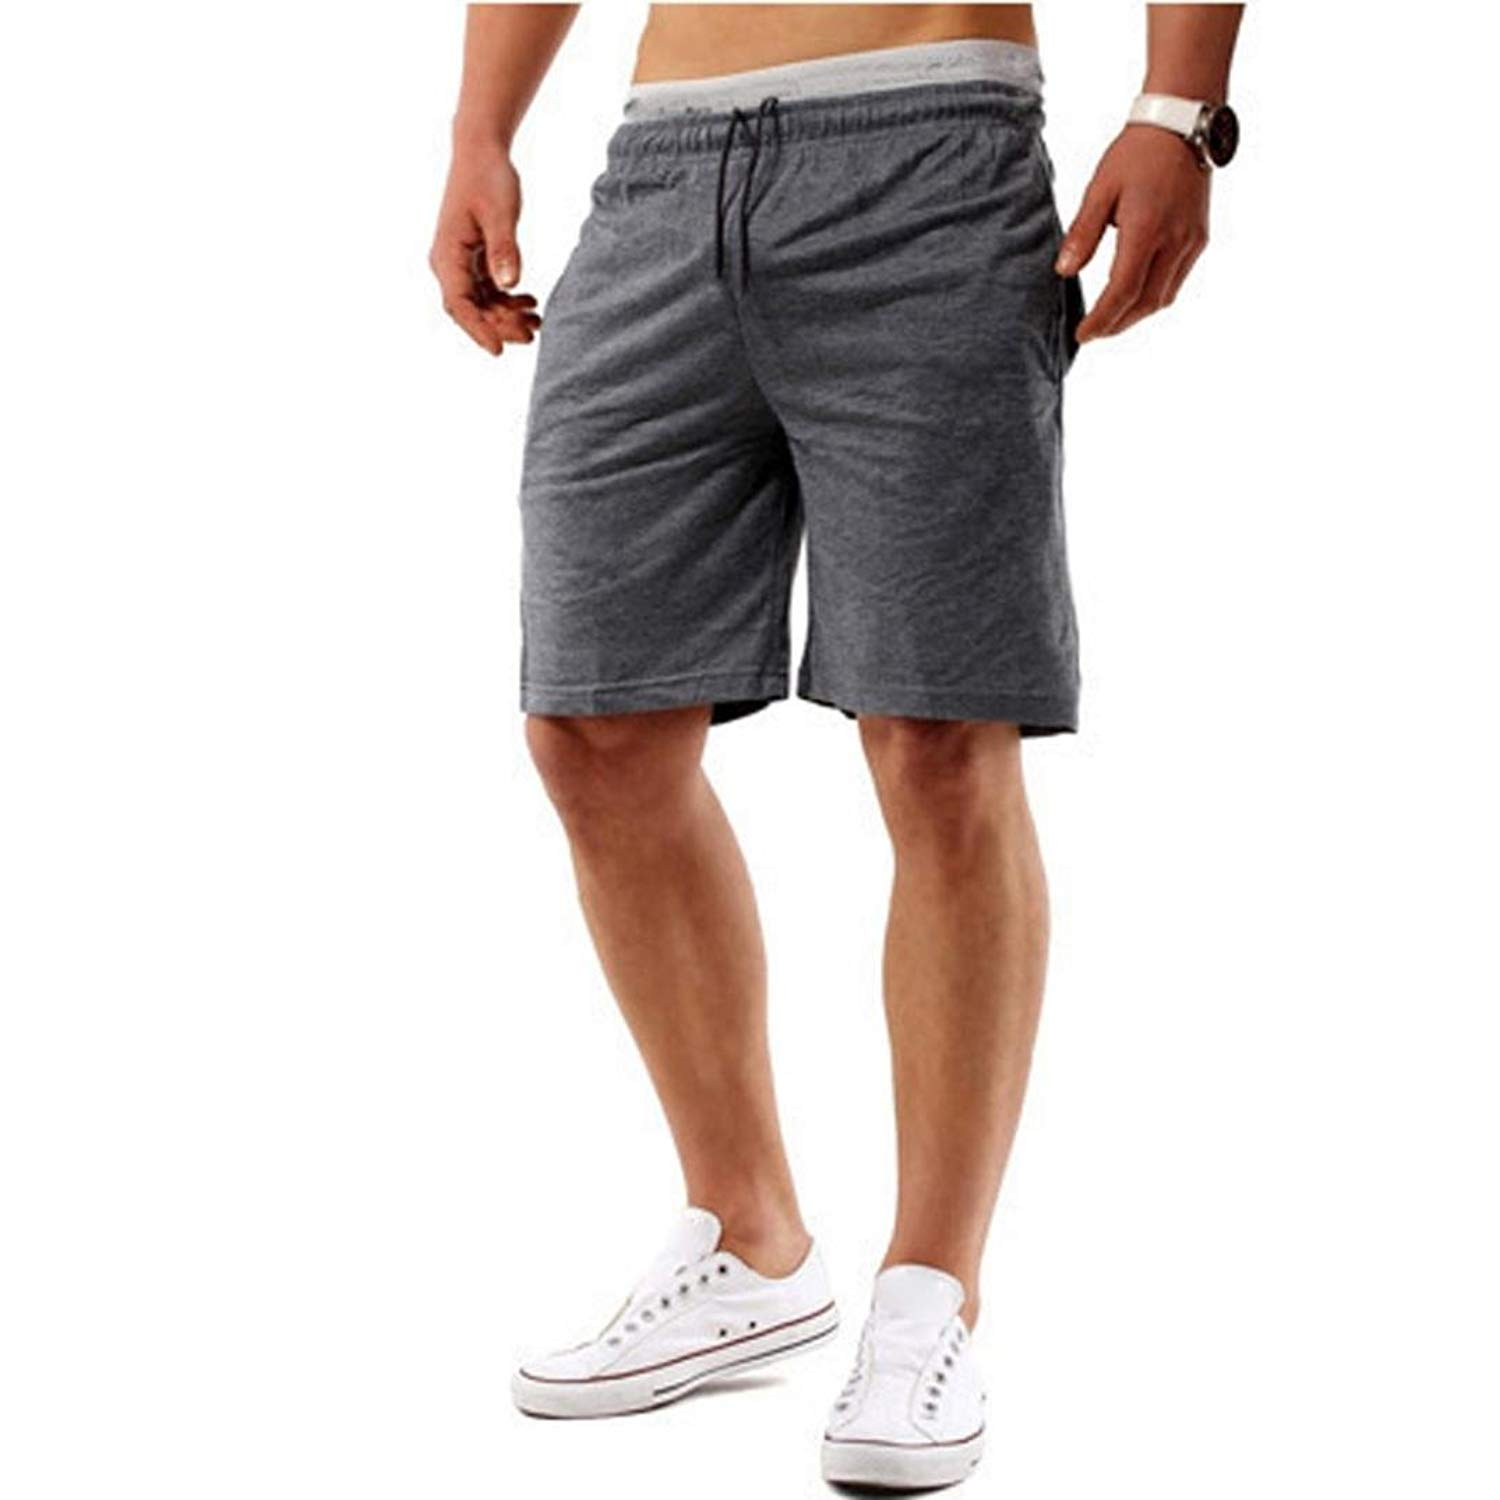 Morecome Men Pant Mens Cotton Drawstring Shorts,Morecome Men Sports Fitness Elastic Waist Casual Pants